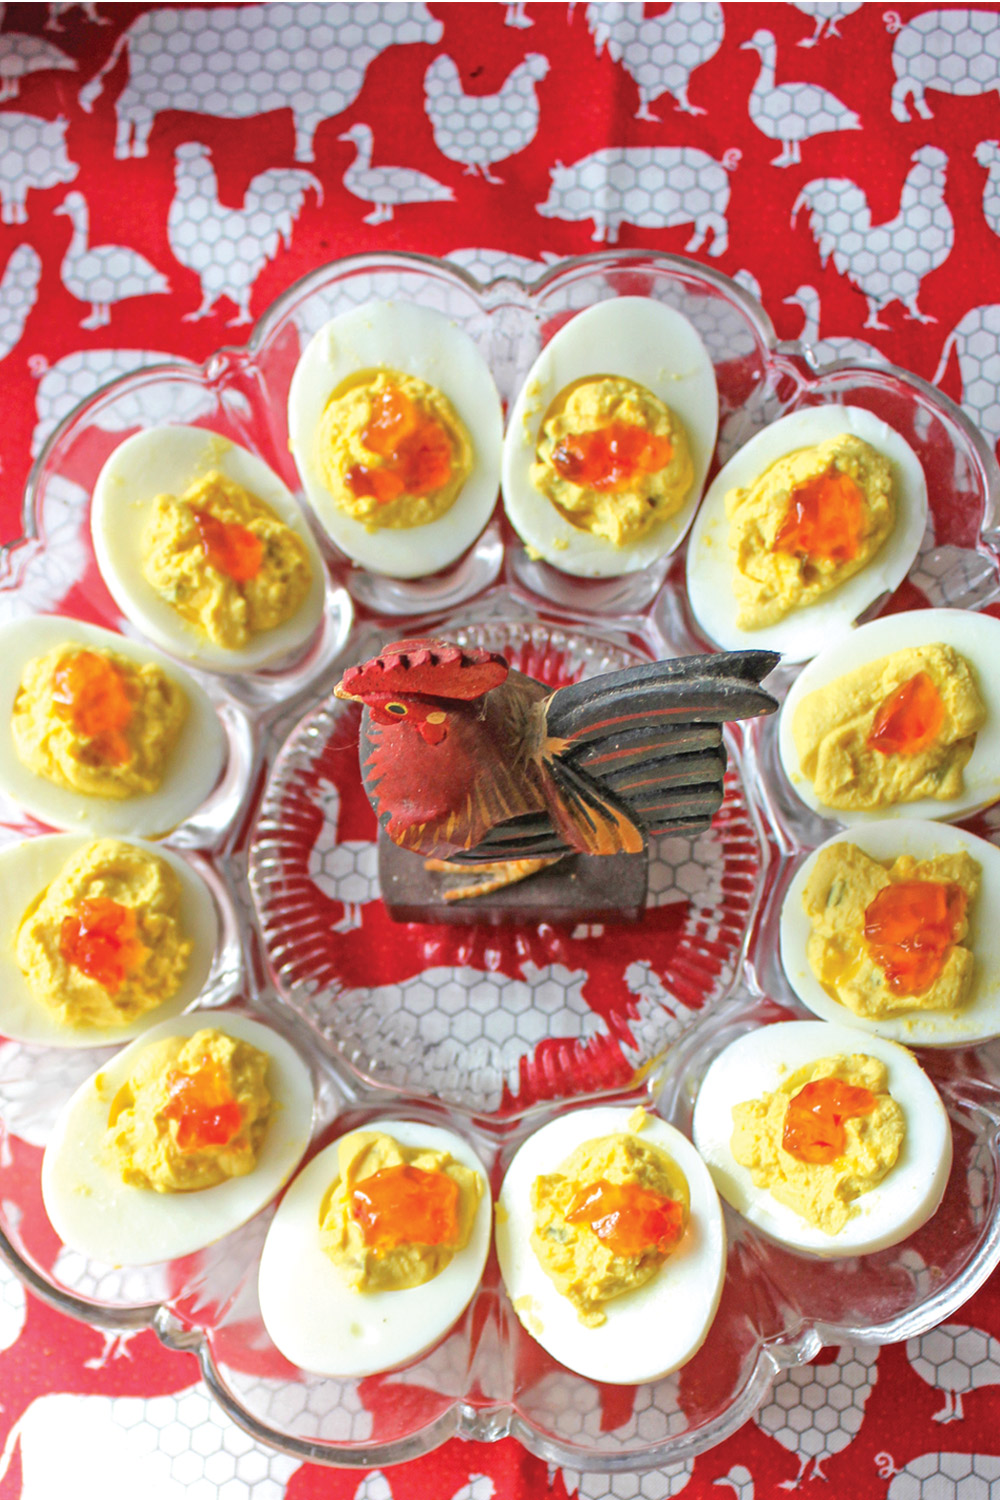 Load up the party tray with  deviled eggs featuring dollops of red pepper jelly